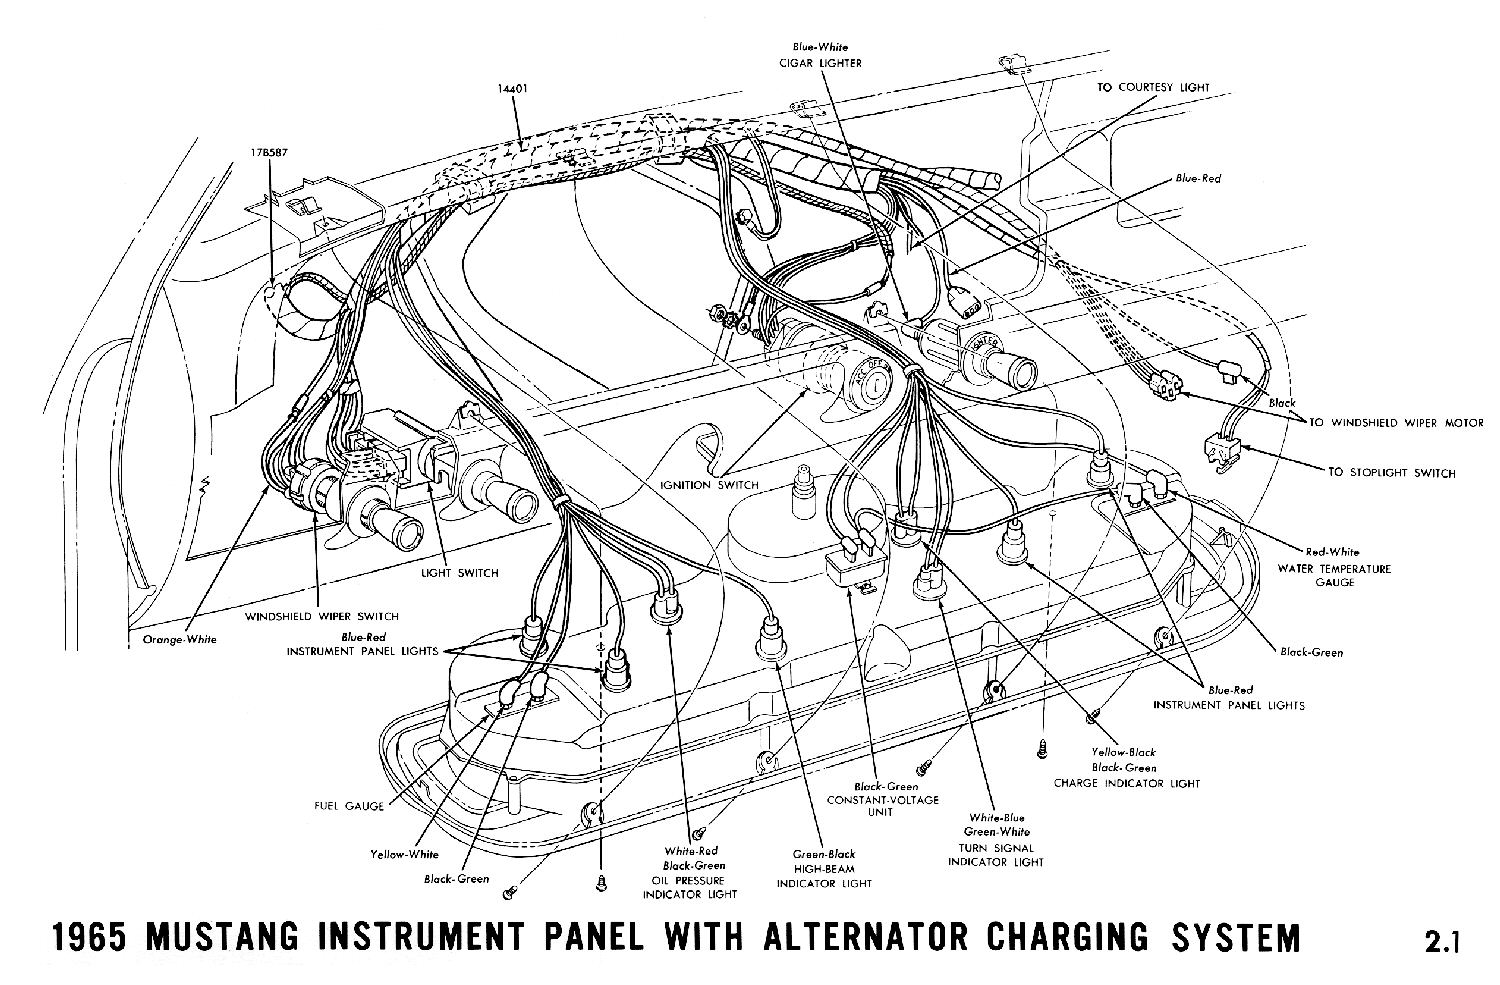 1966 mustang dash light wiring diagram guest battery charger 1965 diagrams average joe restoration